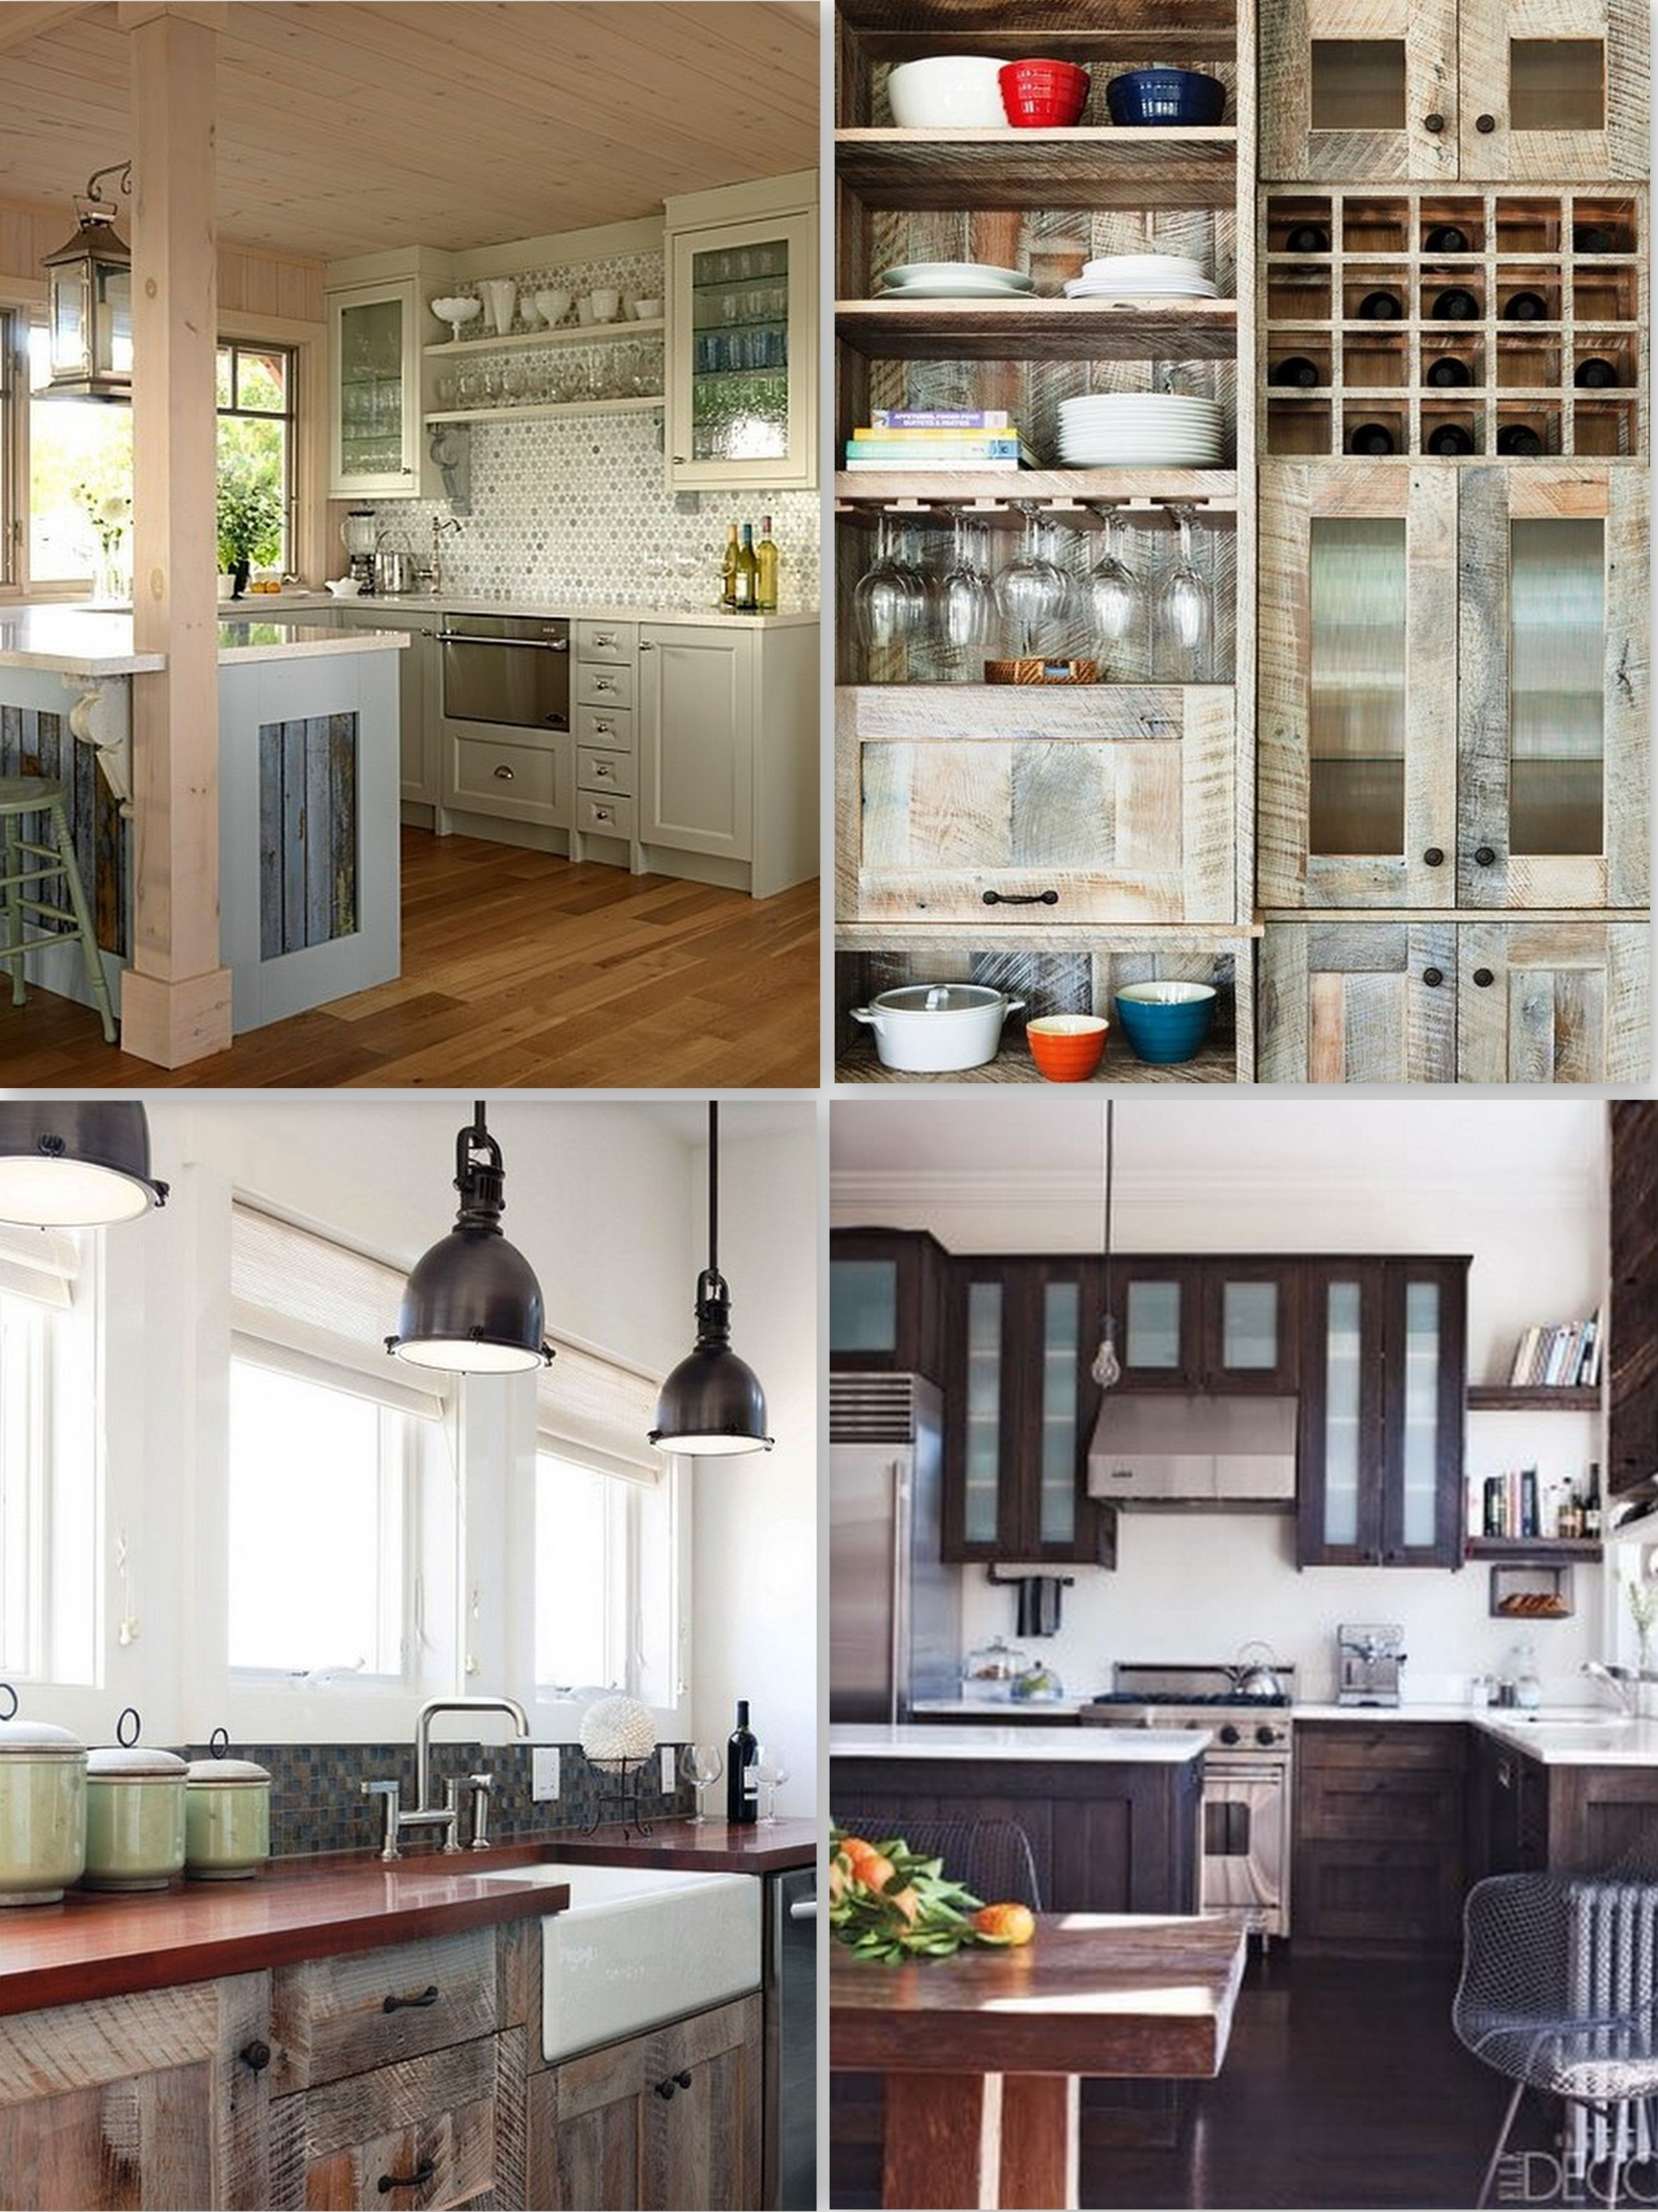 Fascinating Reclaimed Wood Kitchen Cabinets Picture And Decoration Ideas  With Wood Kitchen Cabinets With White Trim And Wood Kitchen Cabinet Doors  Kitchen ...